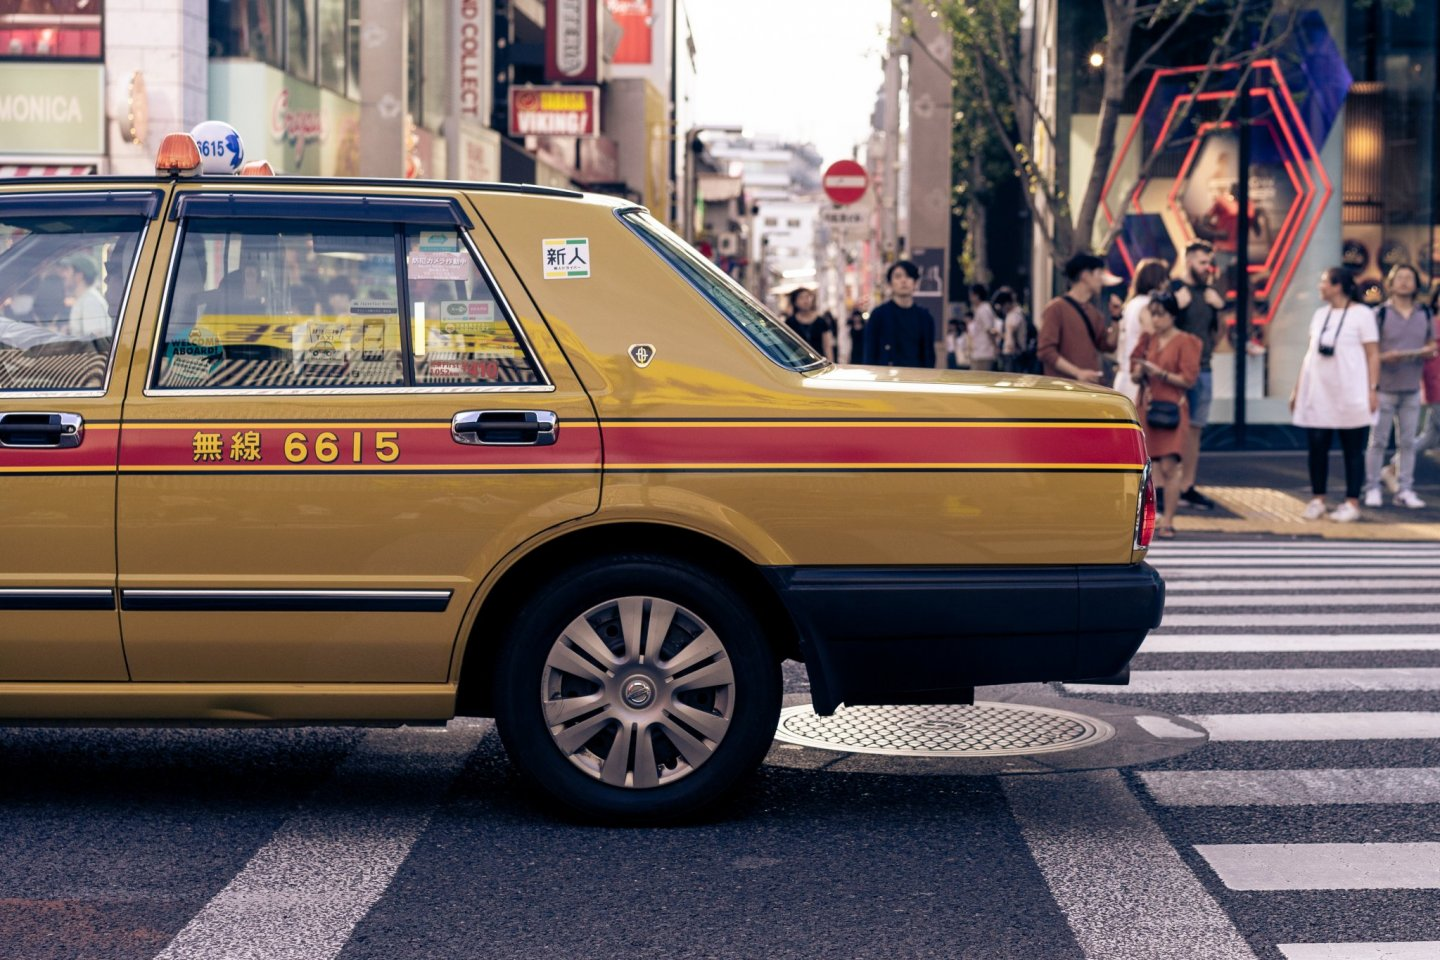 Taxis in Japan - Transport - Japan Travel